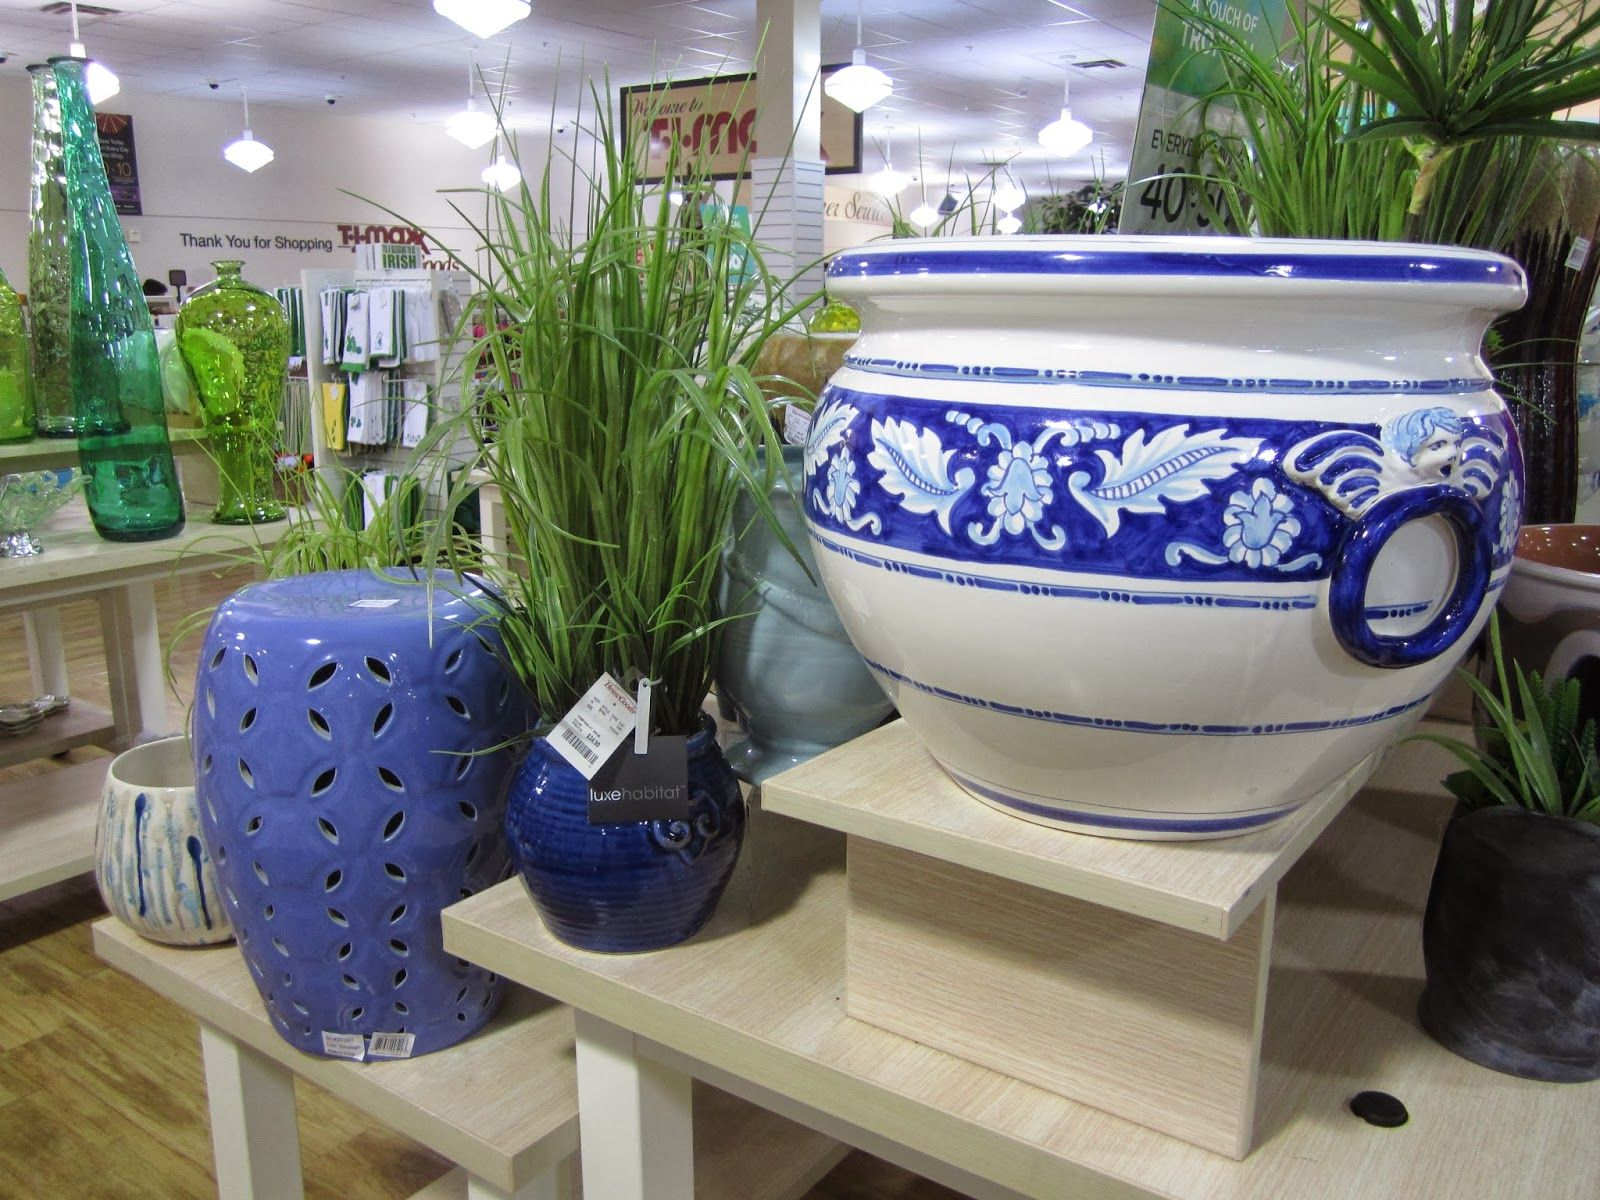 Beau Inspire Bohemia: TJMaxx Homegoods Heaven: Garden Stools, Planters And Decor  For Spring, Plus The African Bazaar Is Back!